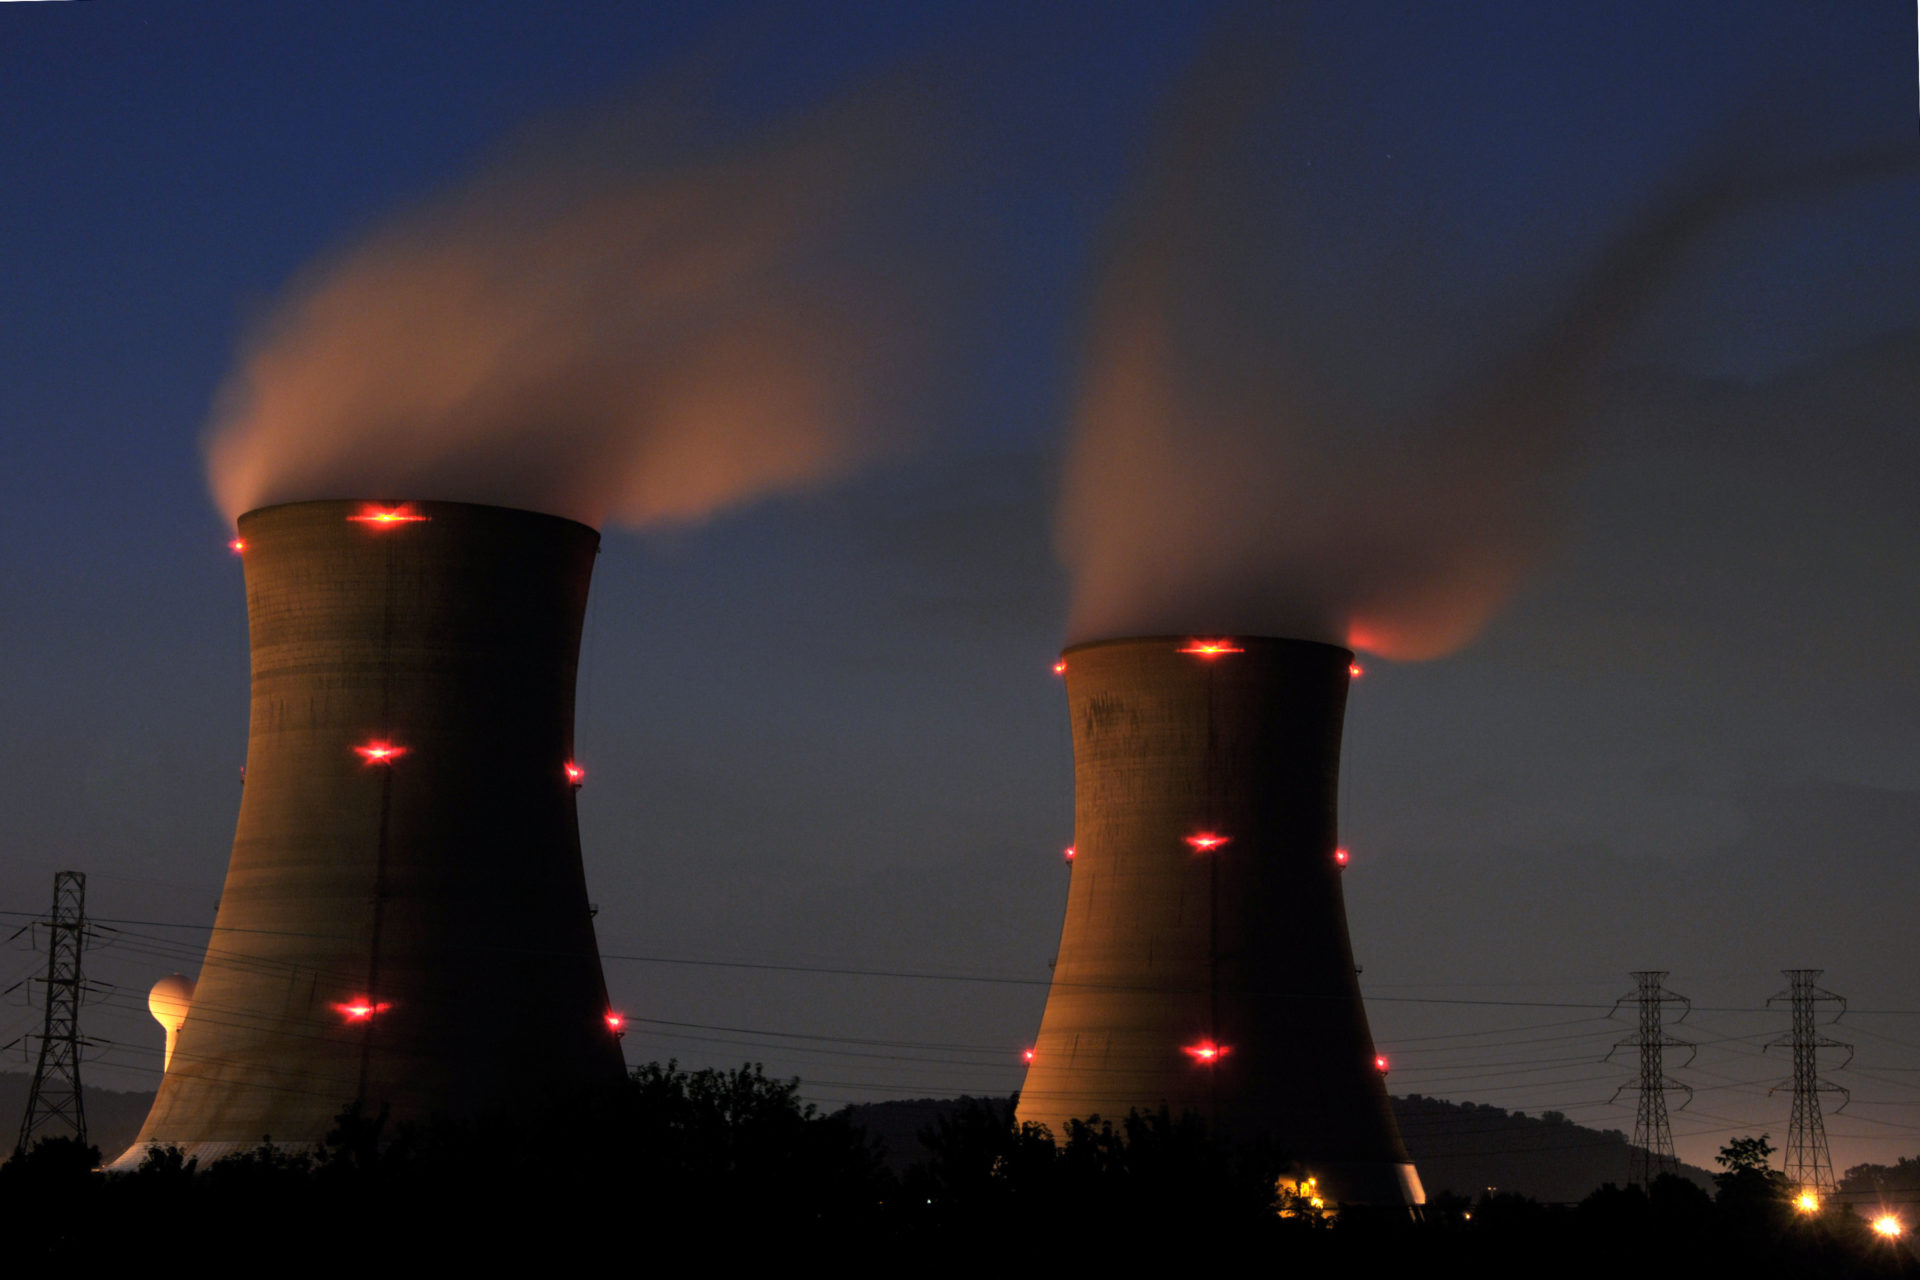 Hackers are increasingly targeting energy companies – here's how